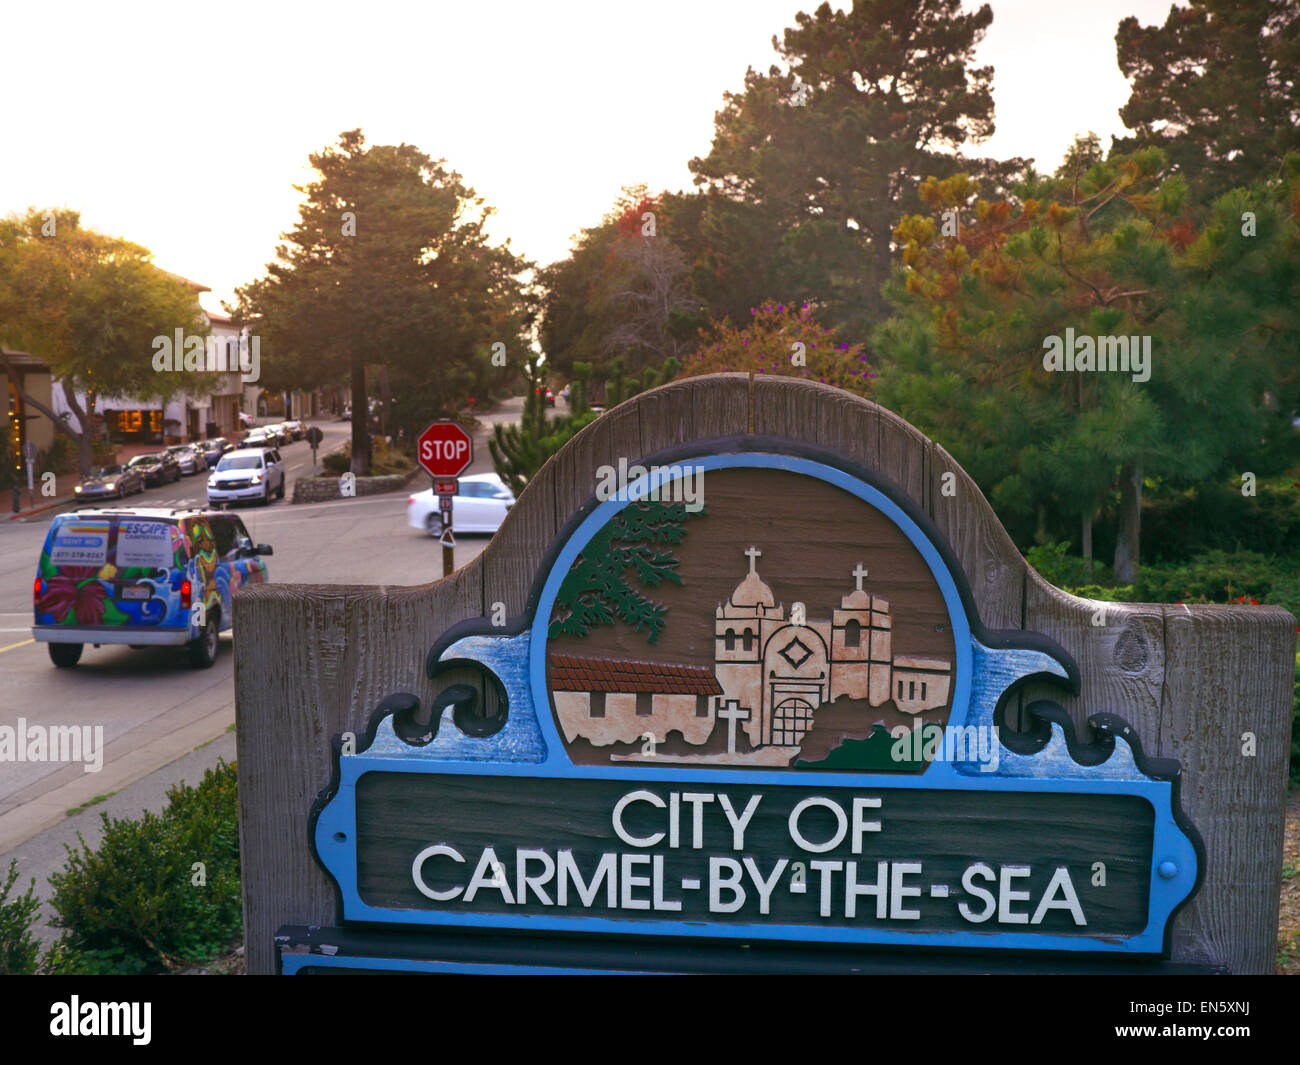 City limits sign with Carmel Mission engraving at entrance to Carmel by the sea California USA - Stock Image